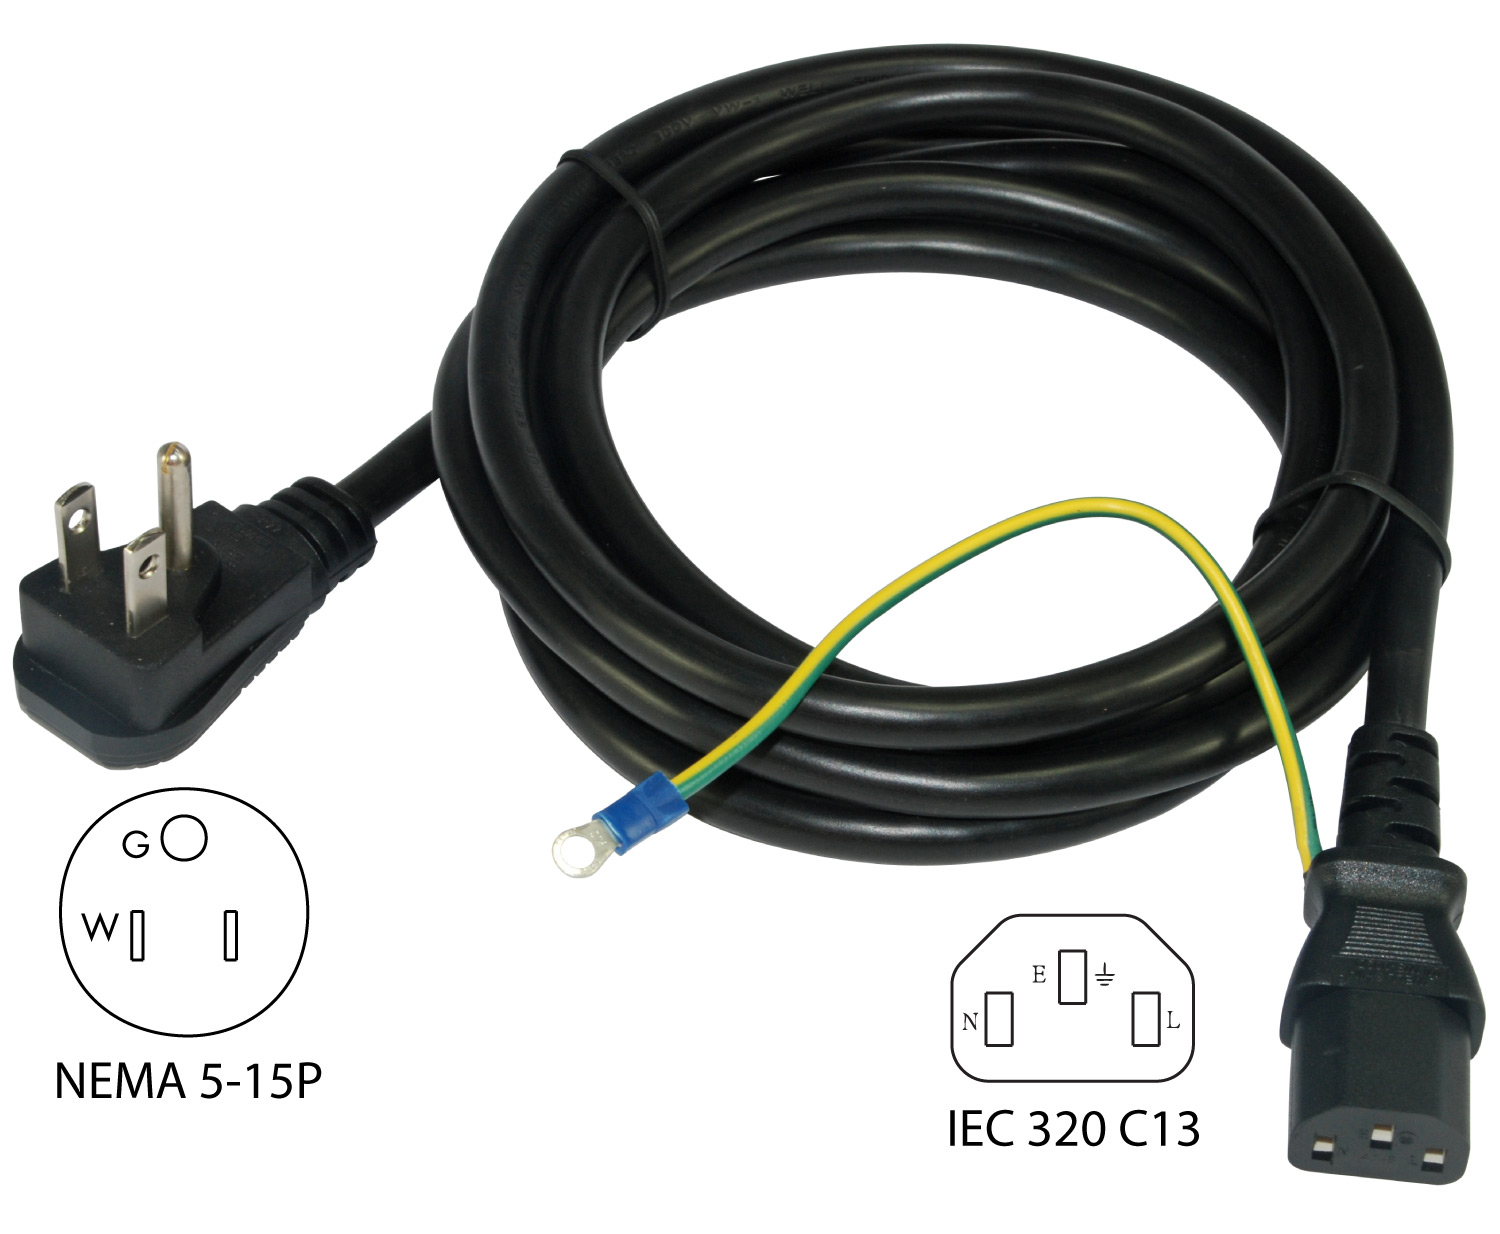 iec power cord wiring diagram three way switch c14 circuit maker